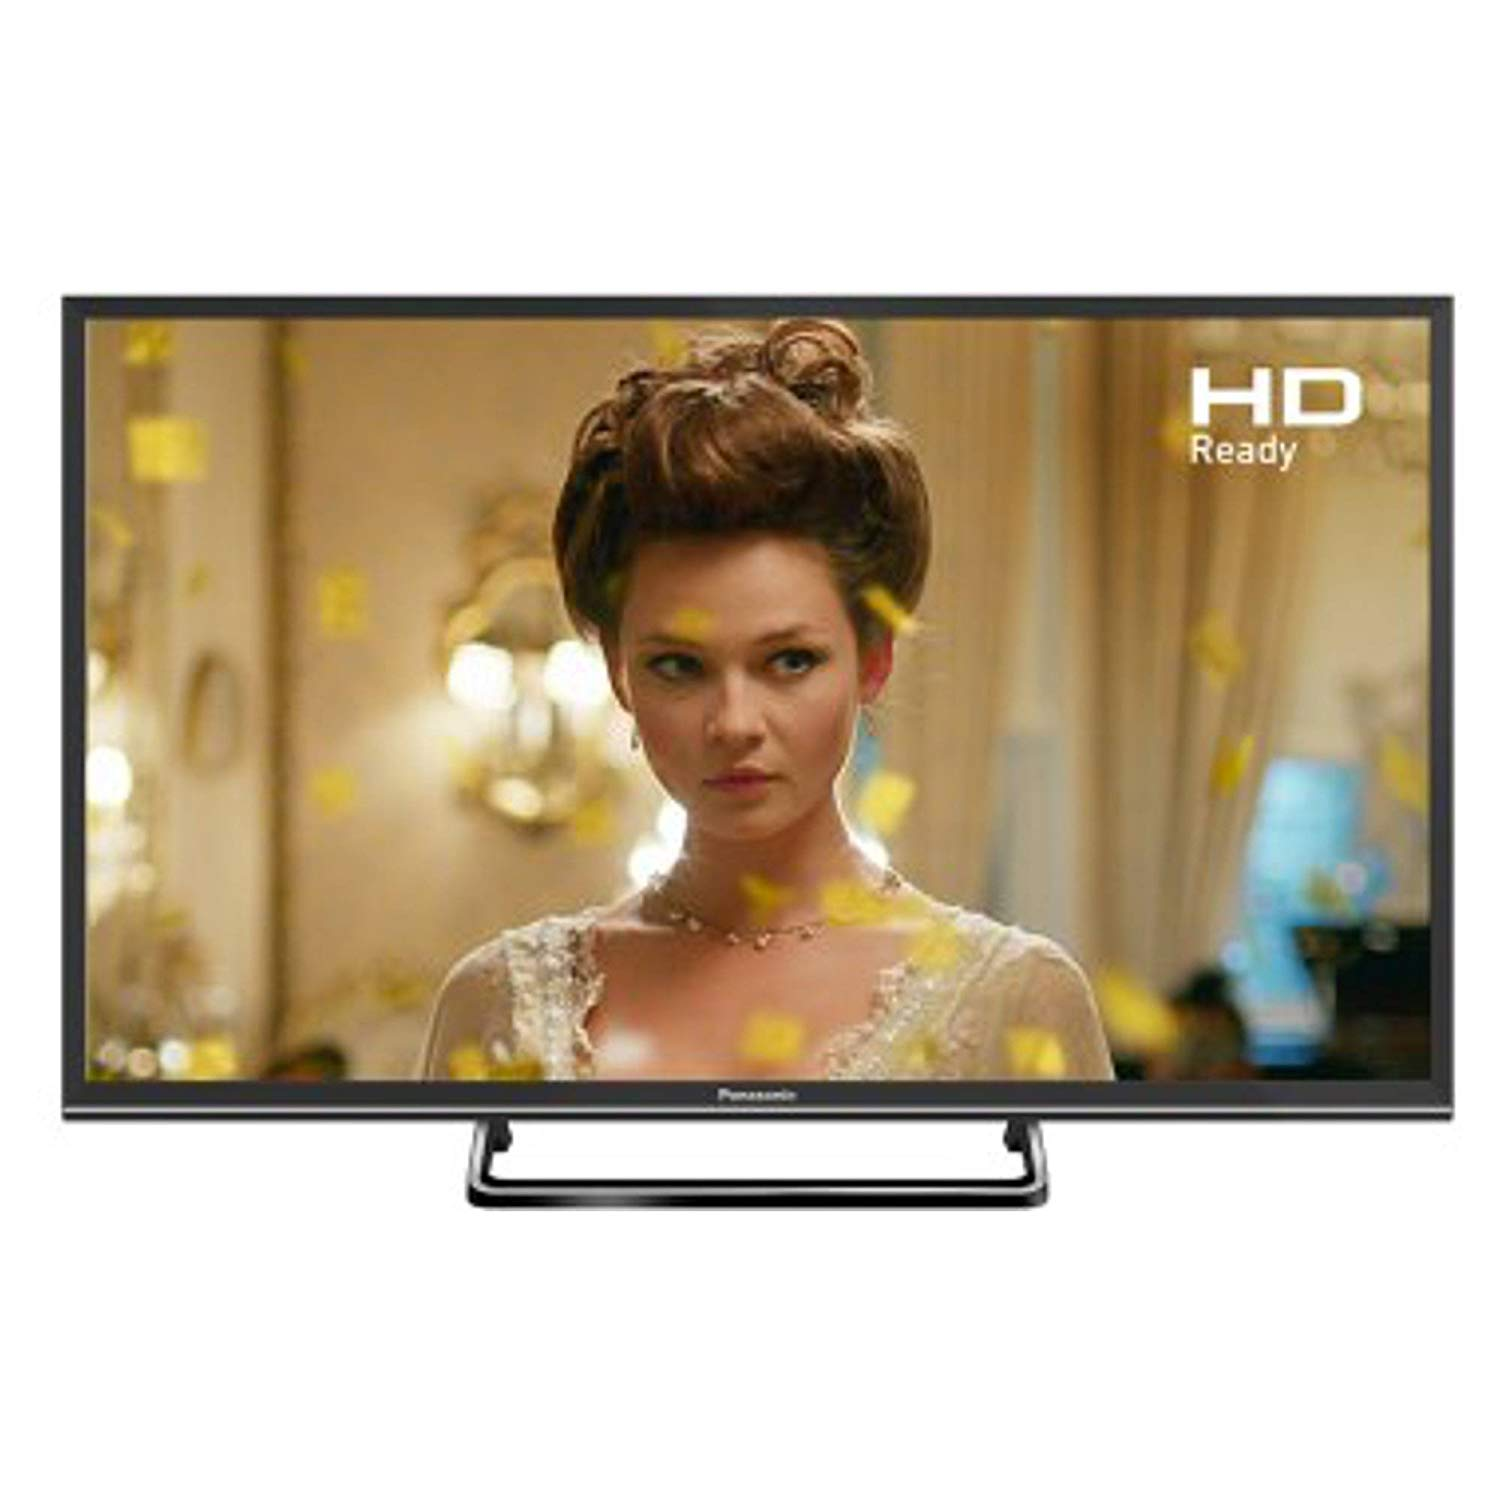 "Panasonic TX 32FS503B - 32"" LED Smart TV - 720p"